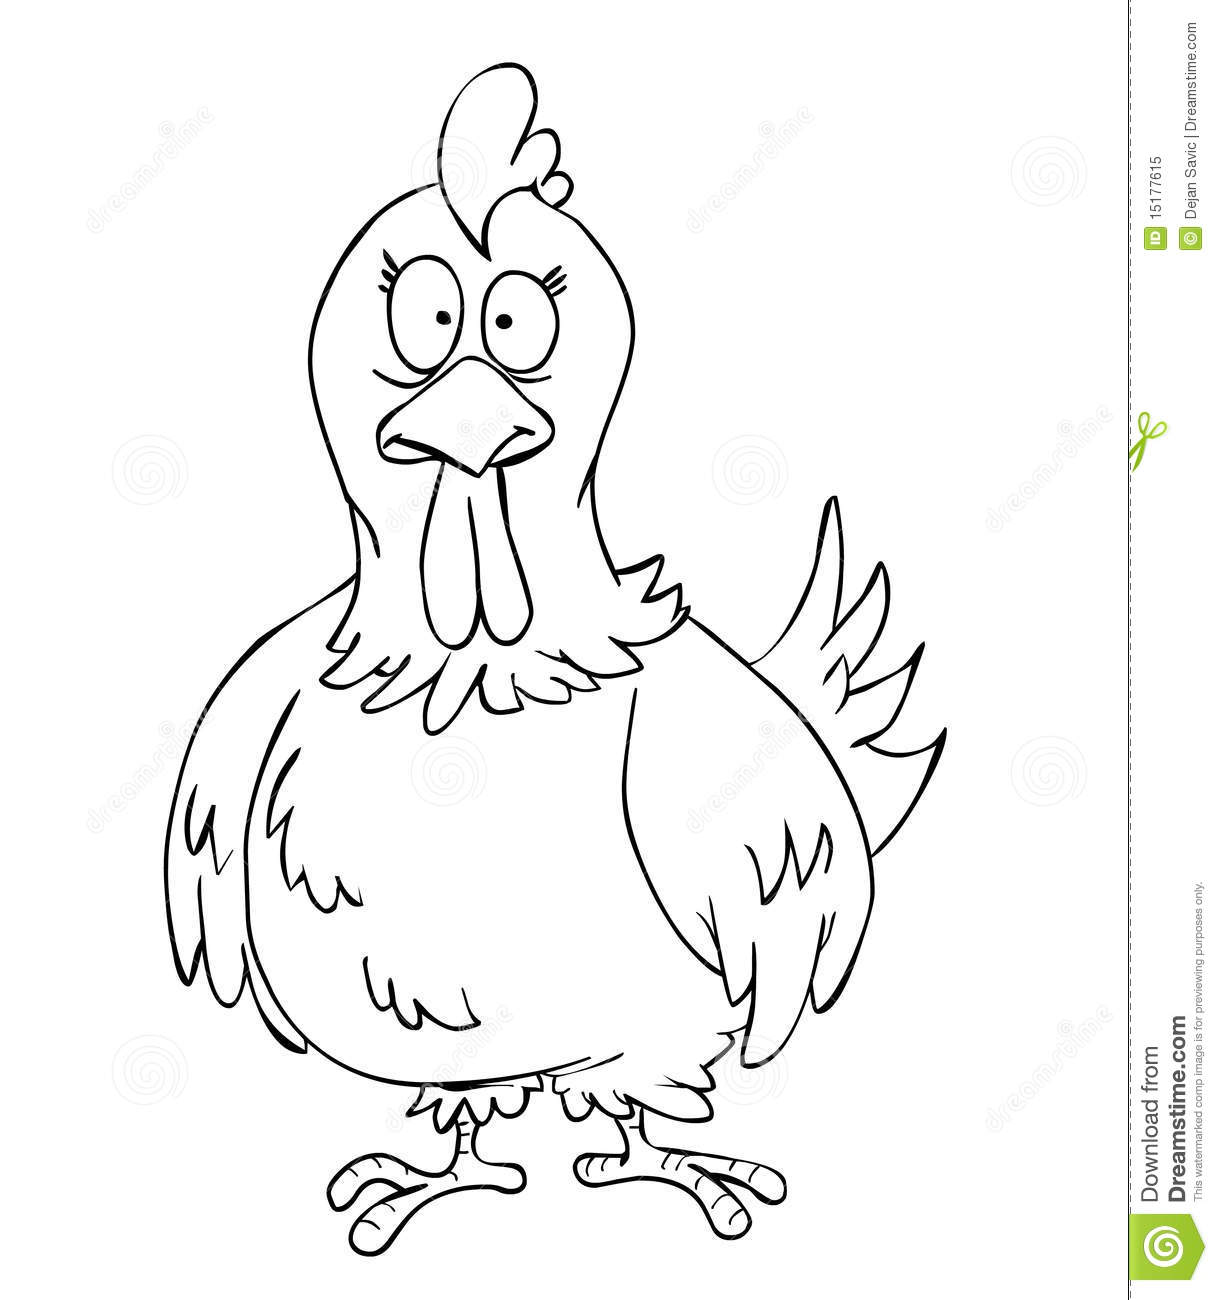 Chicken cartoon black and white